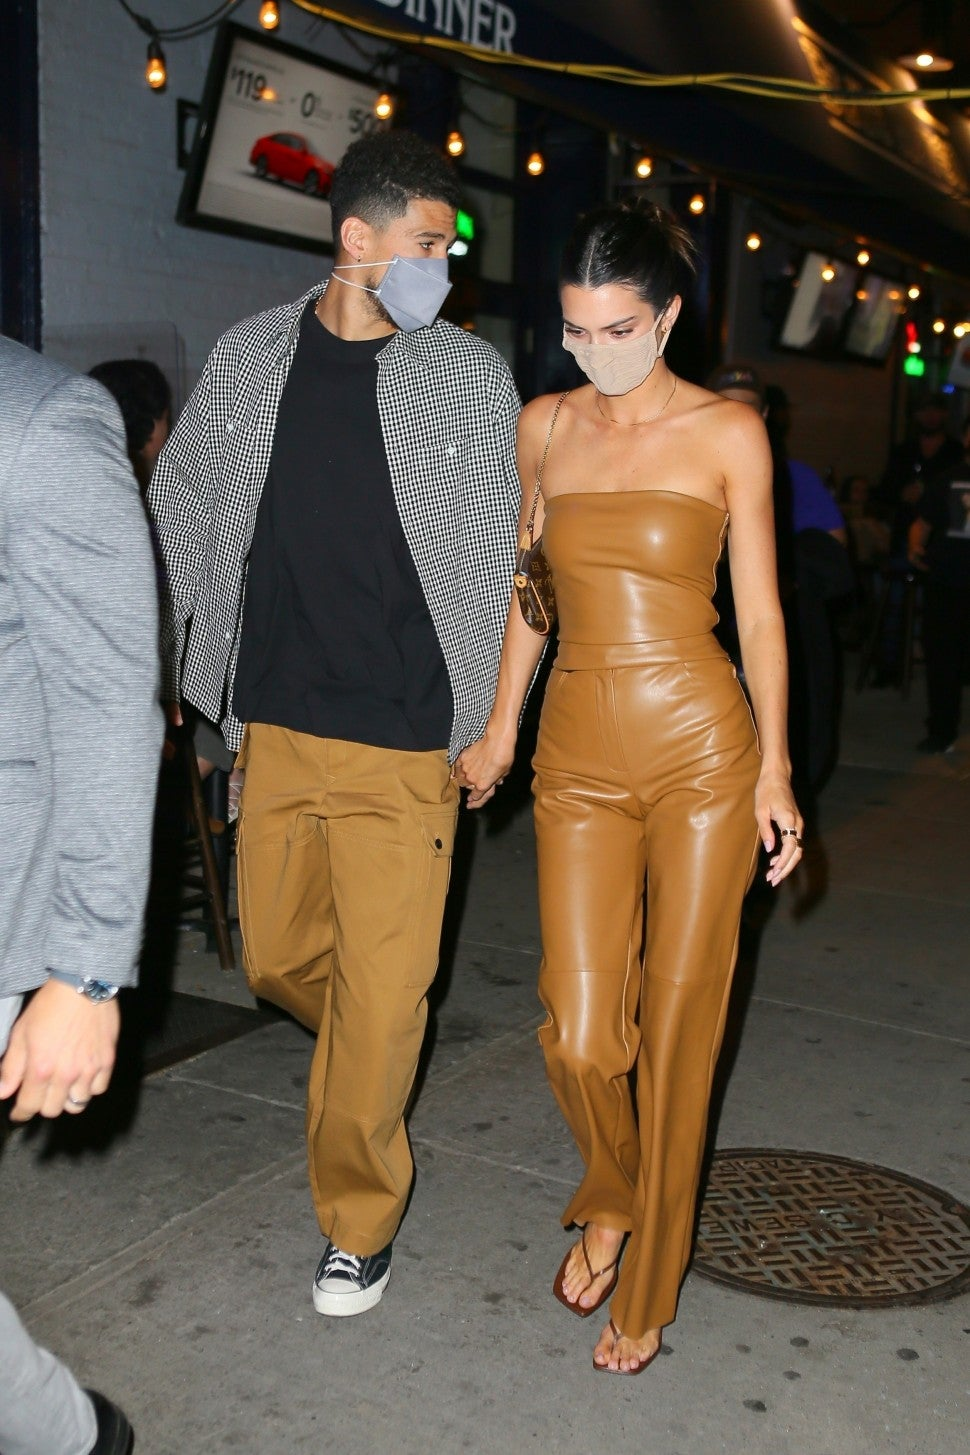 Kendall Jenner and Devin Booker Hold Hands During Date Night in New York  City | Entertainment Tonight